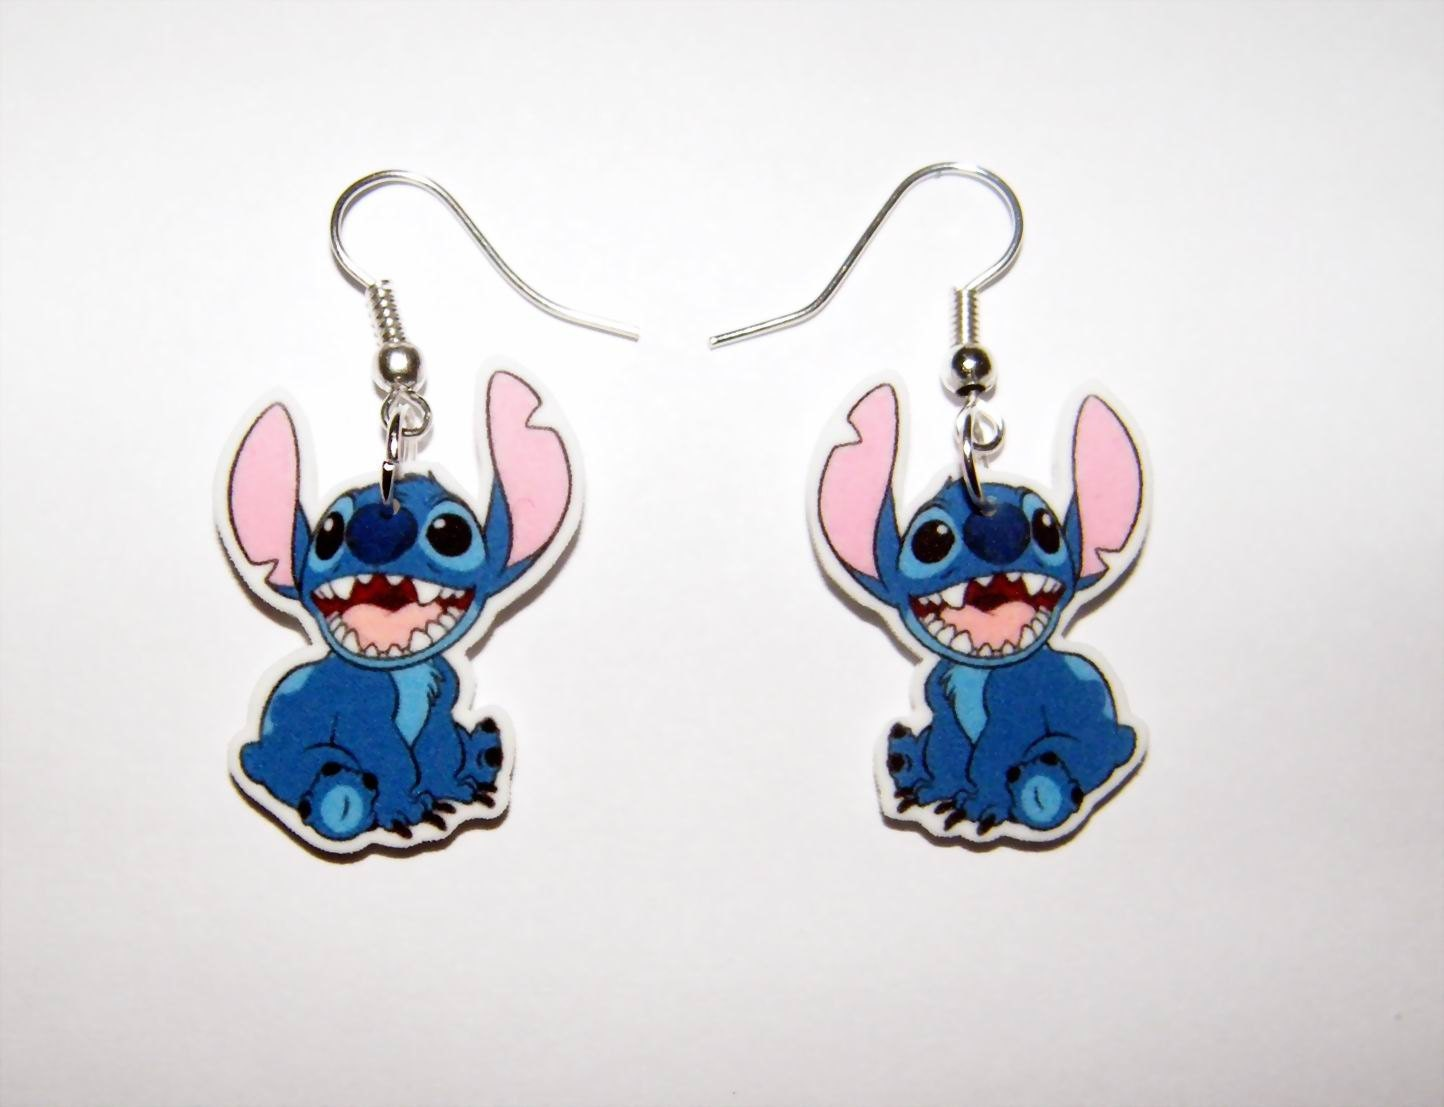 disney lilo and stitch stitch earrings by murals4u on etsy